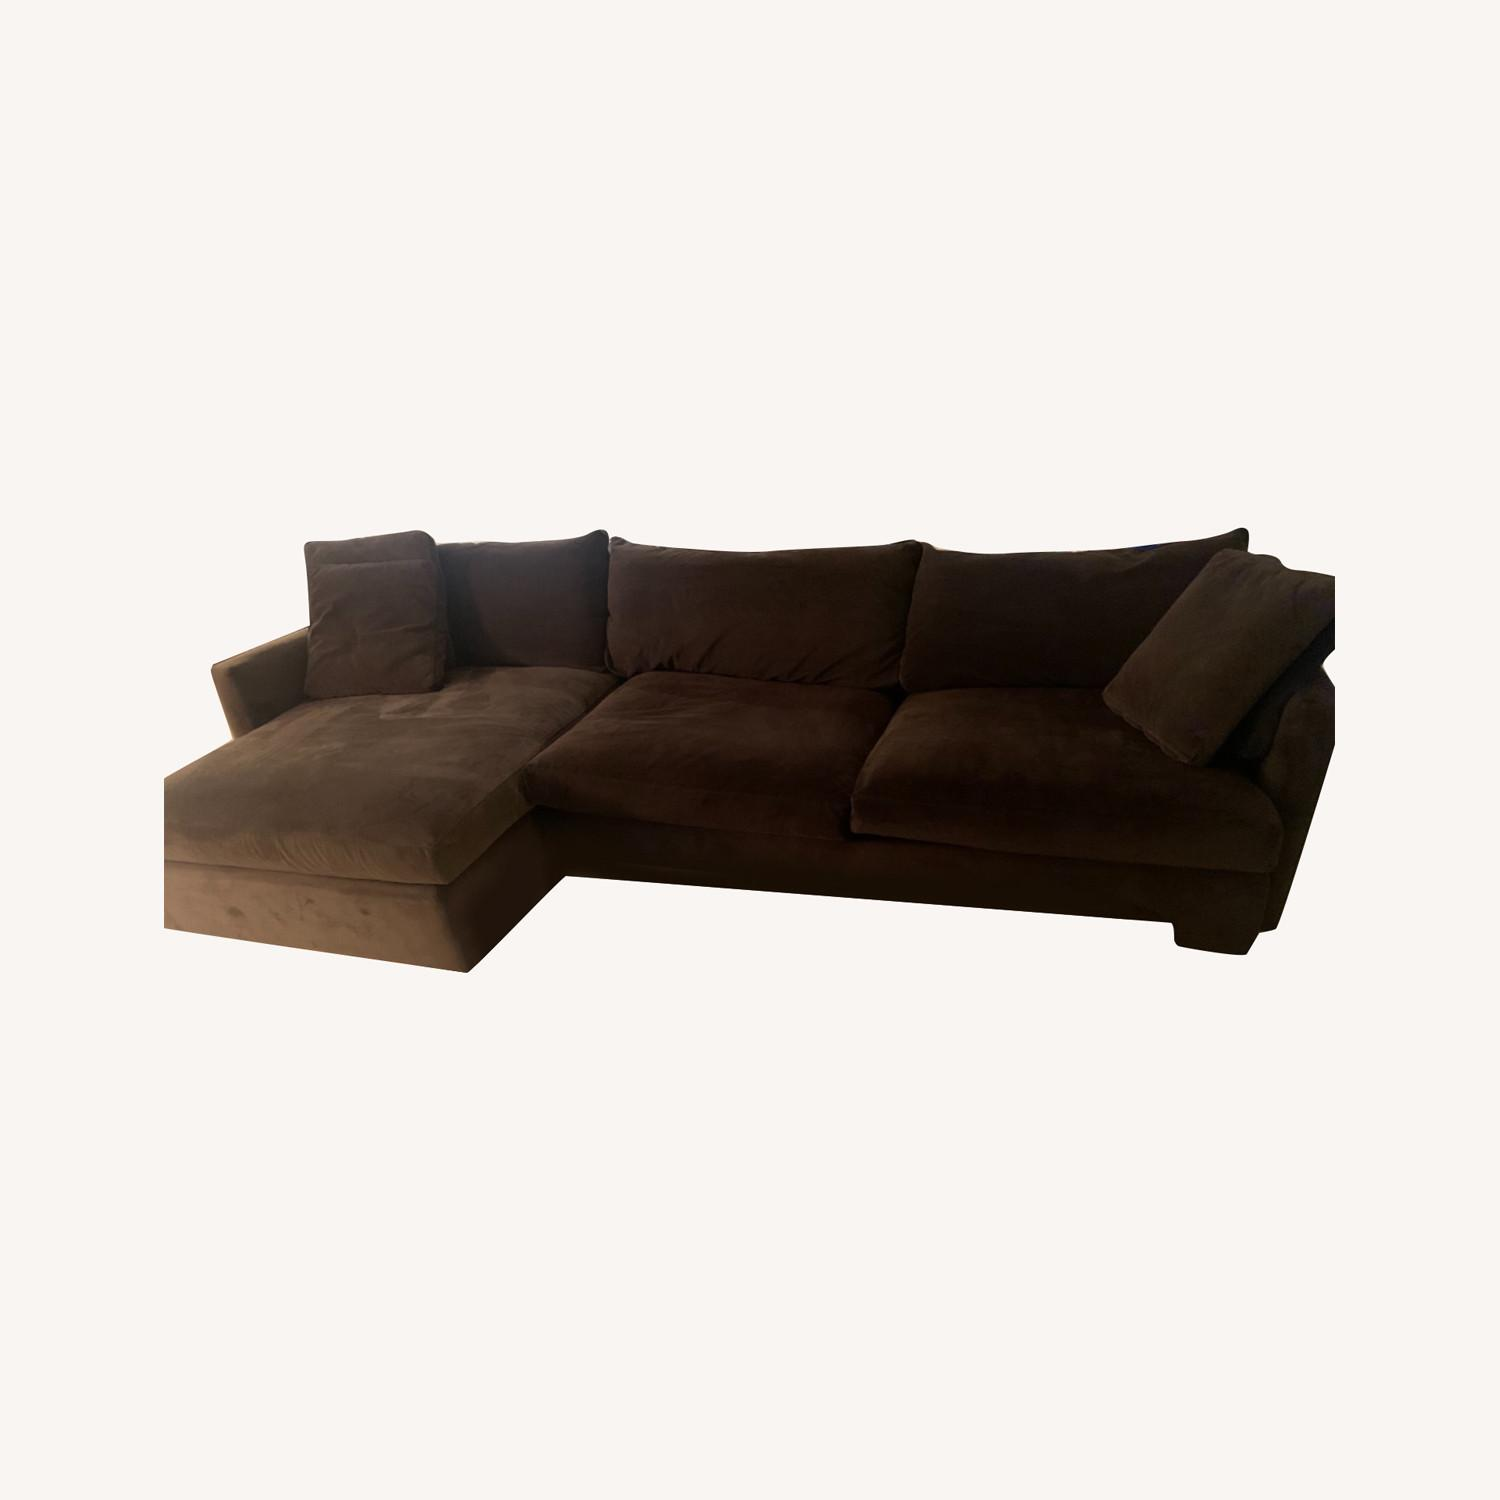 Crate & Barrel Lounge Chaise Brown Color - image-0